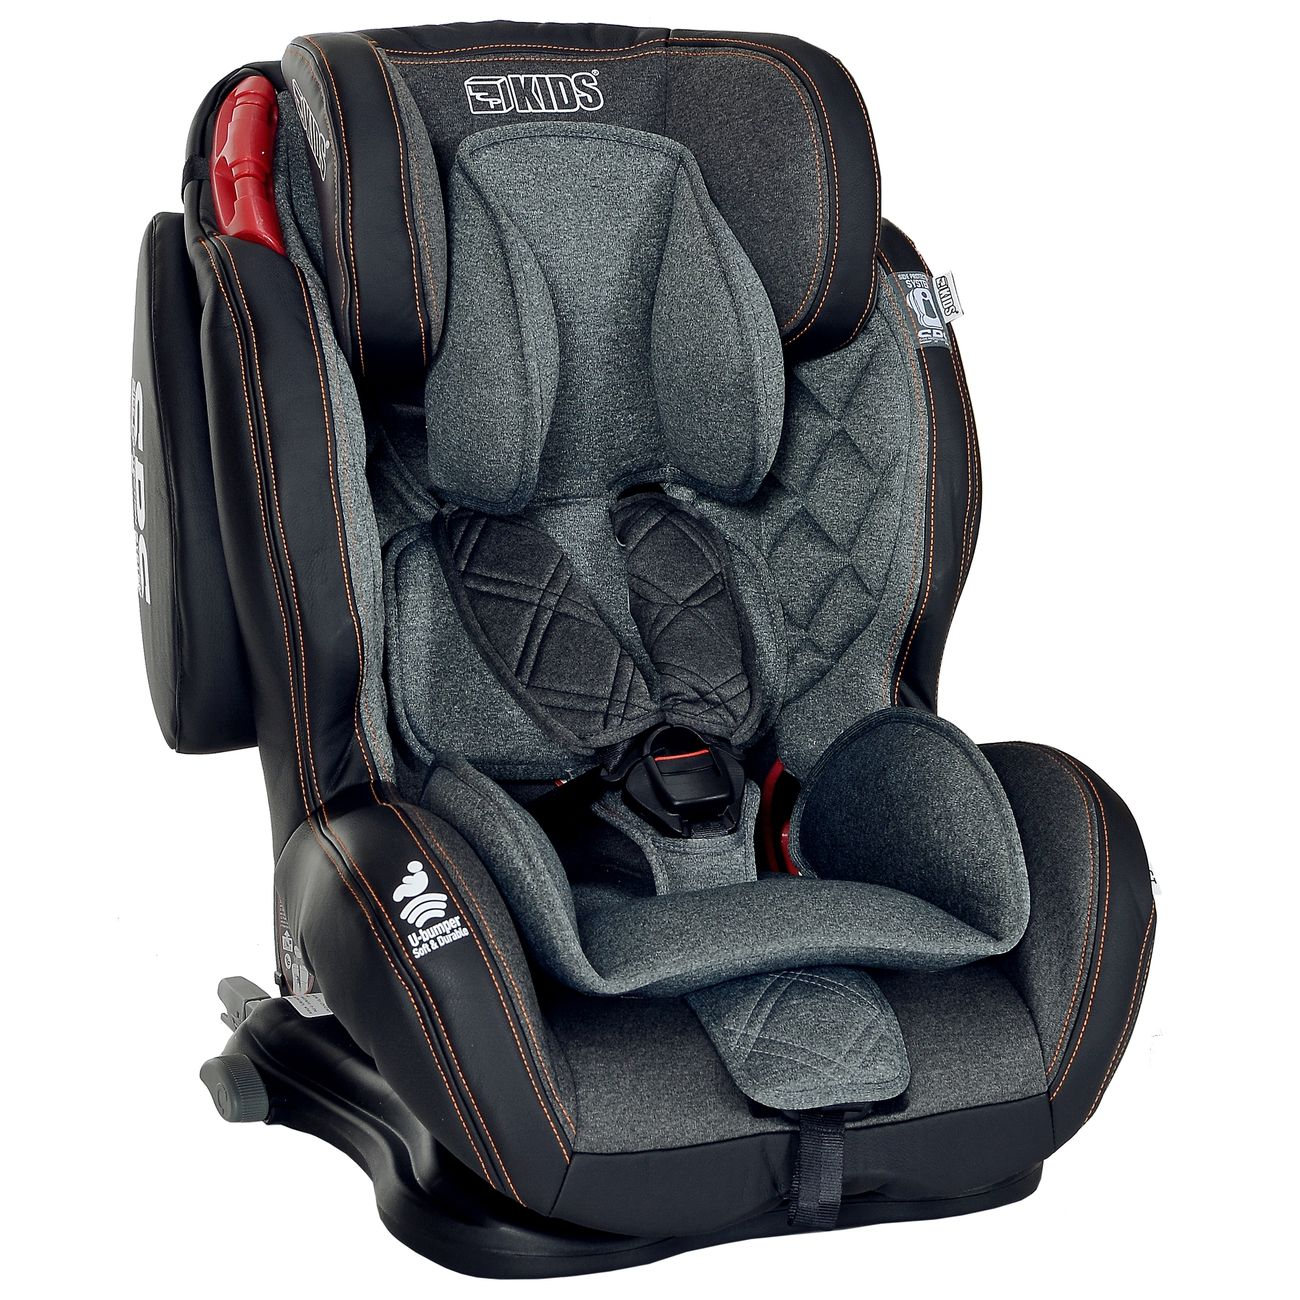 autokindersitz gt comfort isofix 9 36 kg sitzwinkel. Black Bedroom Furniture Sets. Home Design Ideas